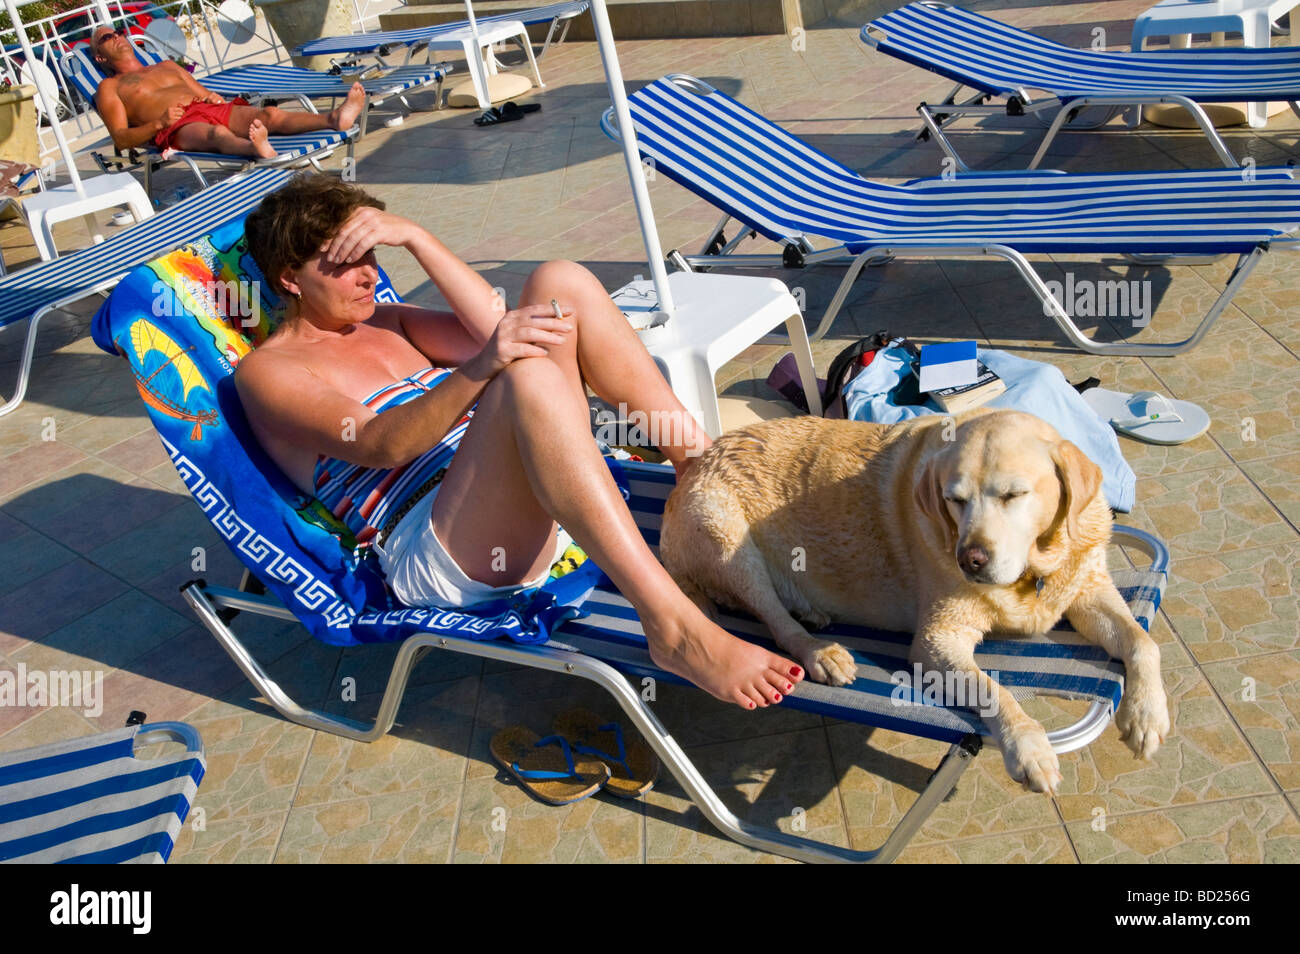 Woman lying on poolside sunbed with golden labrador at hotel near Skala on the Greek Mediterranean island of Kefalonia - Stock Image